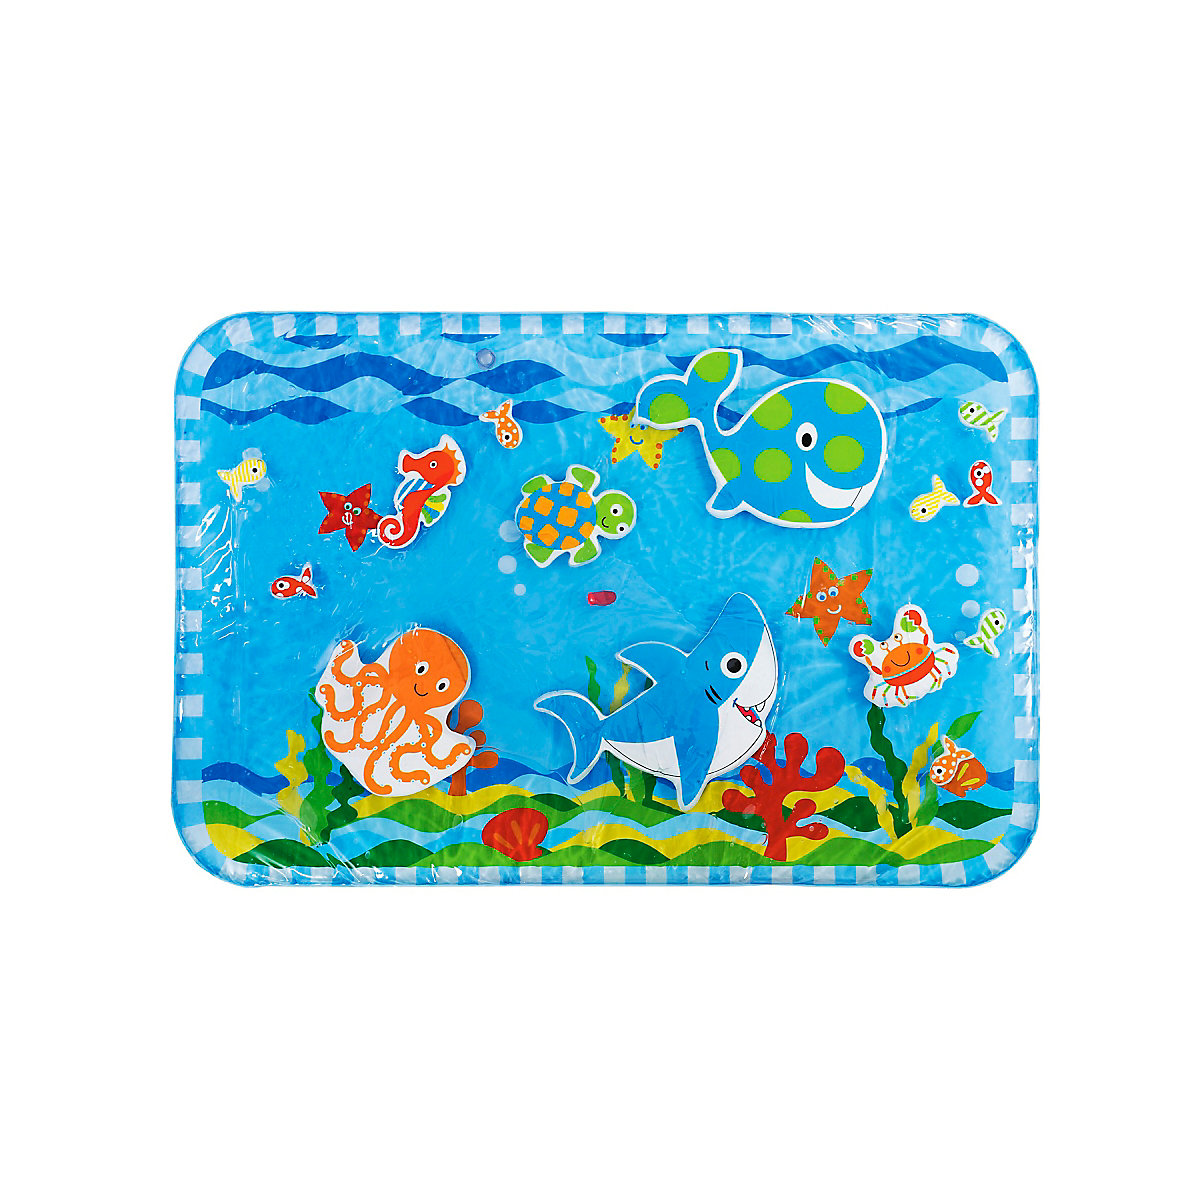 New ELC Boys and Girls Giant Pat Mat Toy From 12 months - Early Learning Centre Gifts